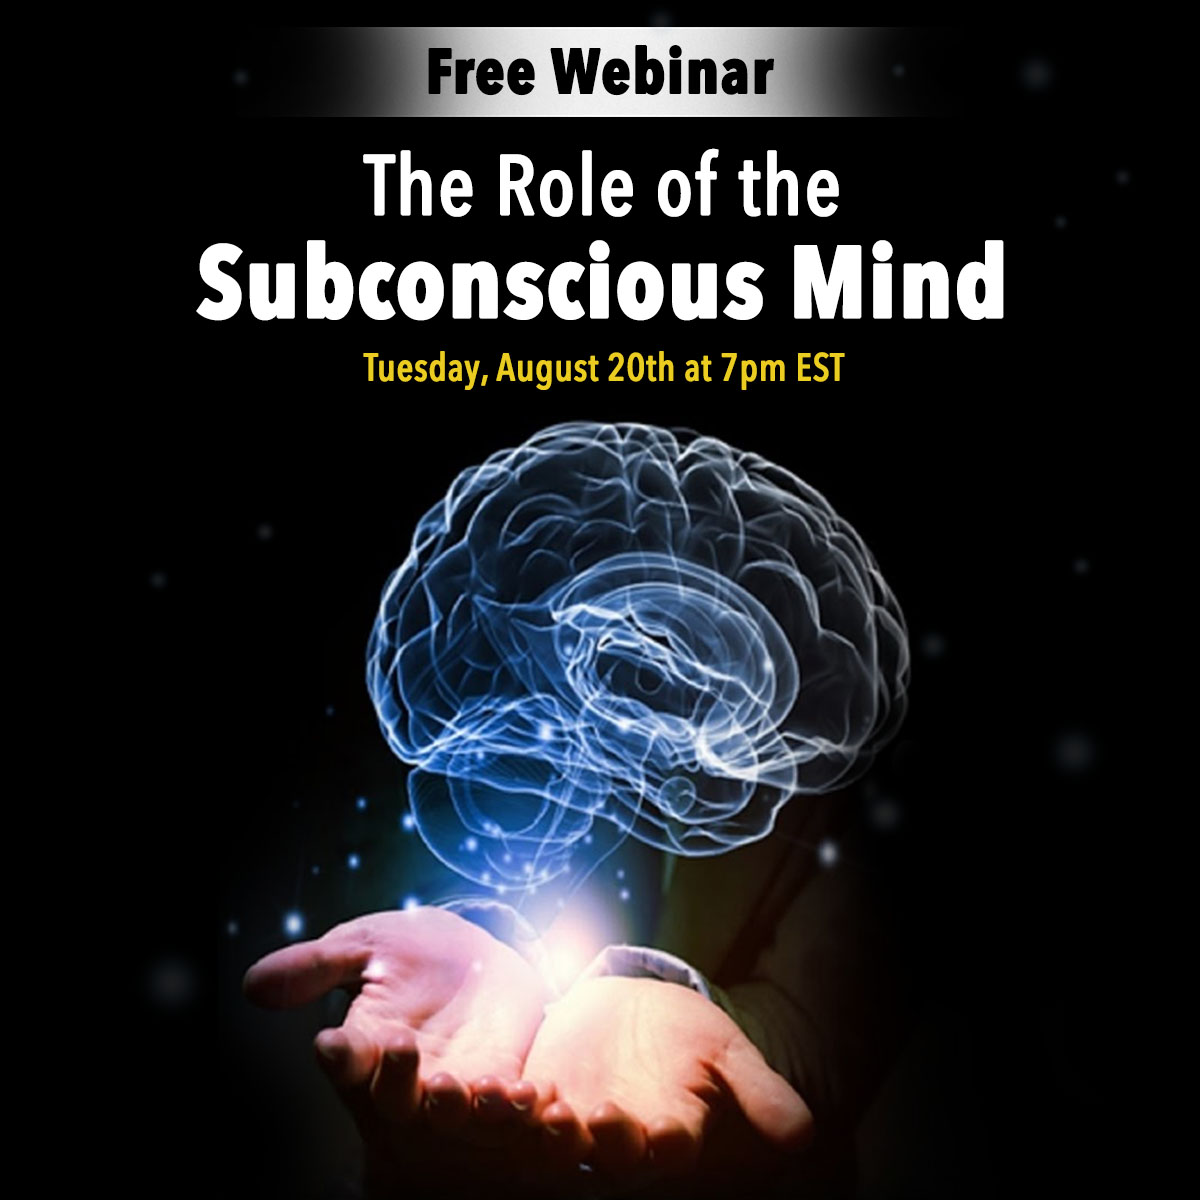 The Role of the Subconscious Mind Webinar